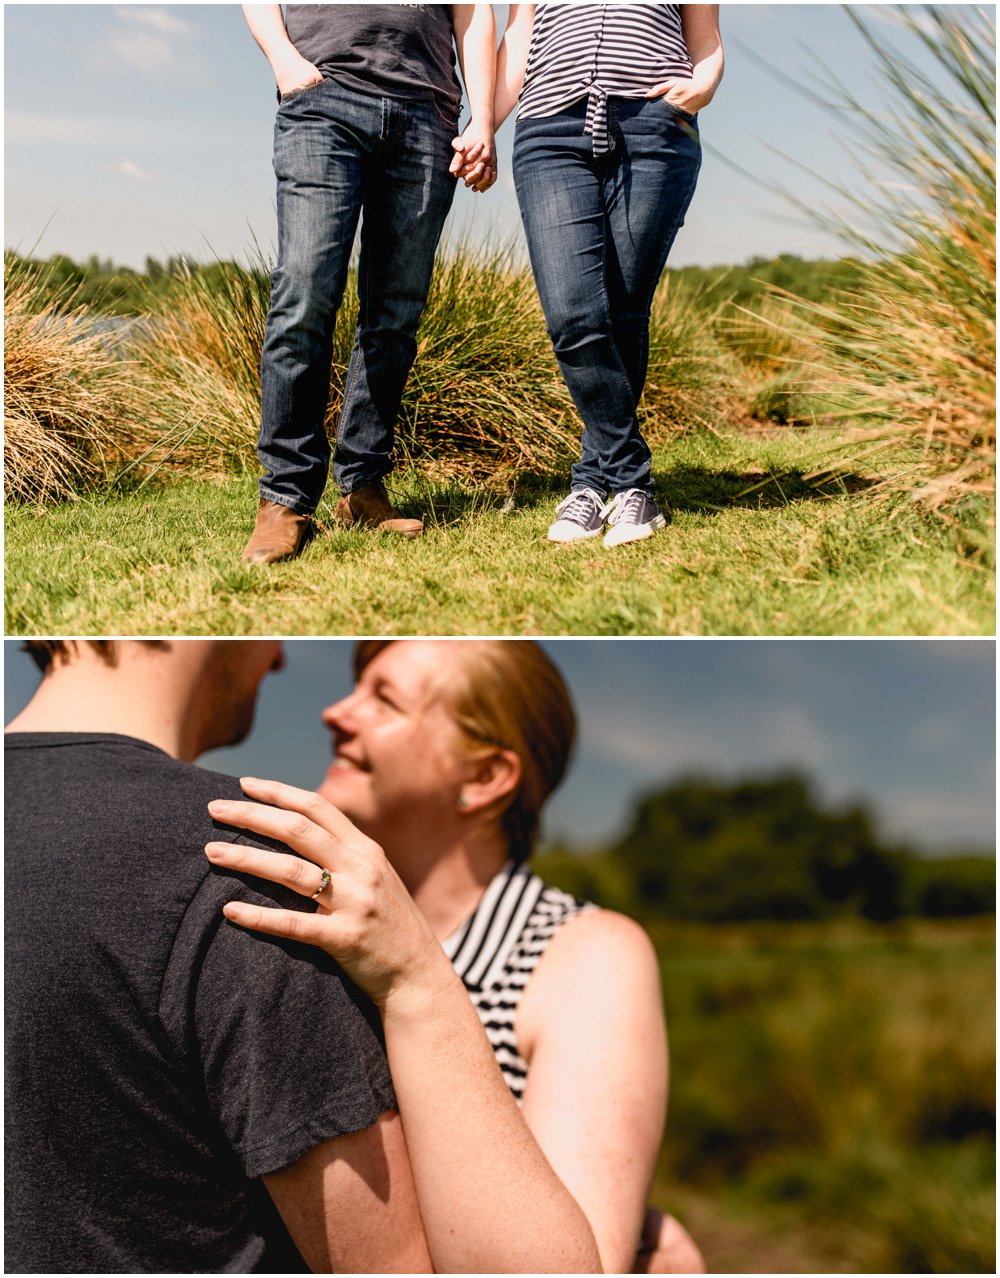 Engagement shoot in Sutton Park by Birmingham, Sutton Coldfield and West Midlands based wedding photographer, Lisa Carpenter Photography.